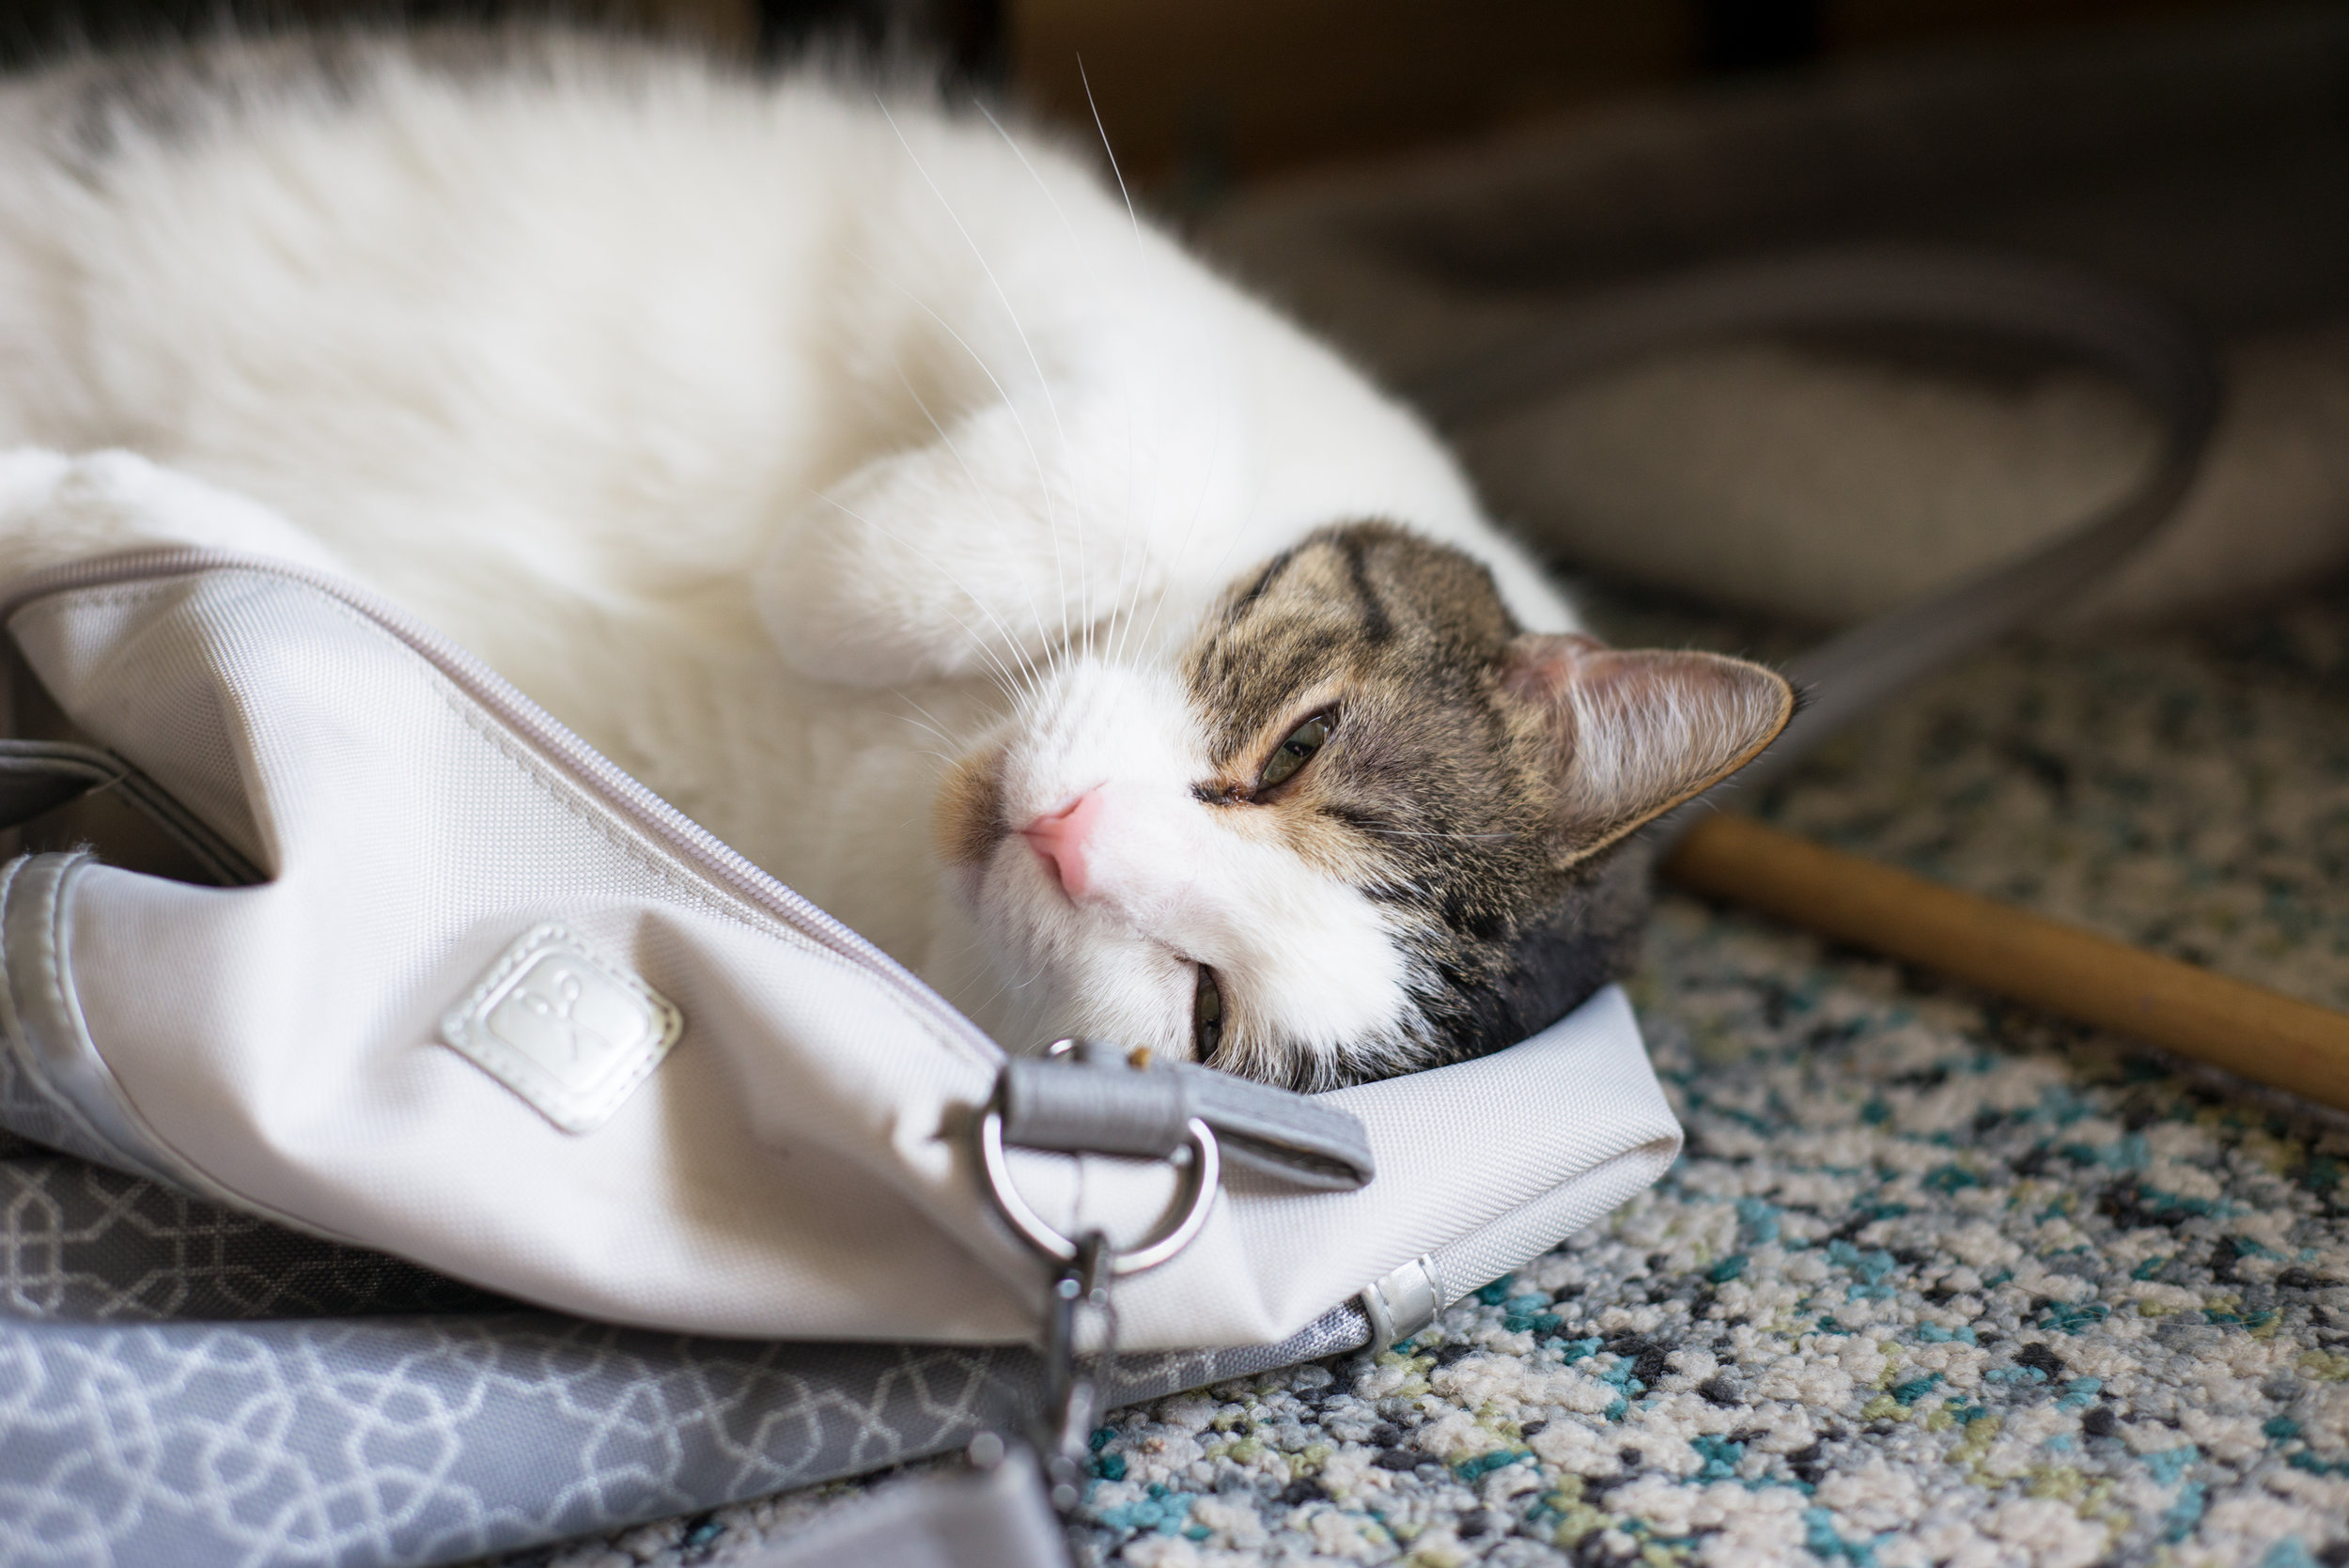 A picture of a domestic short hair cat with a white tummy and black and brown stripes looking at the camera. The cat is slightly on it's side and scrunched up as it is laying in a bag.